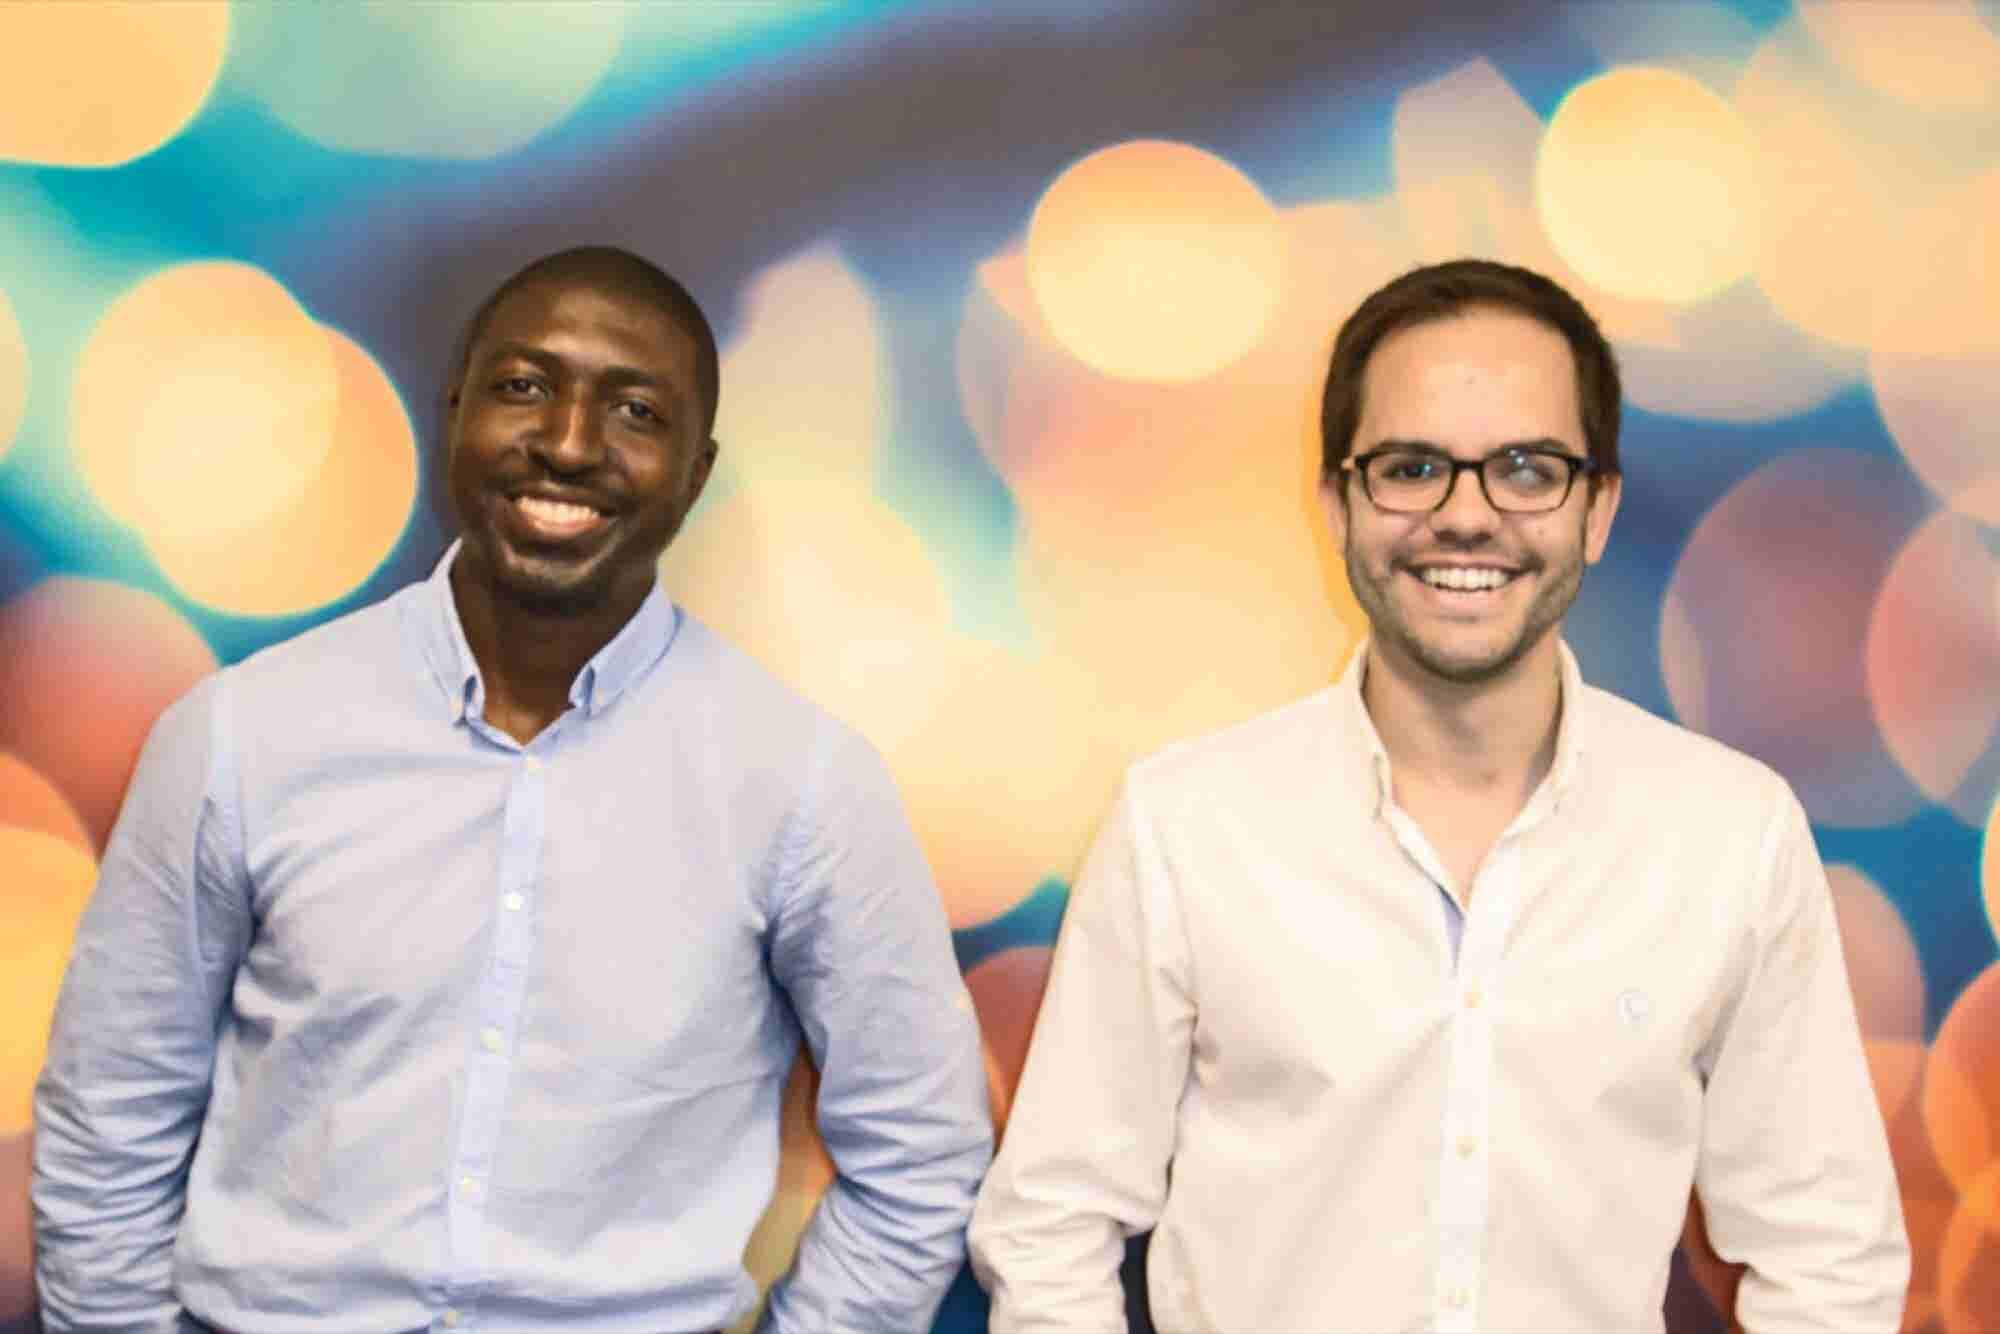 After 90 Meetings in 90 Days, These Founders Finally Found Their Customer